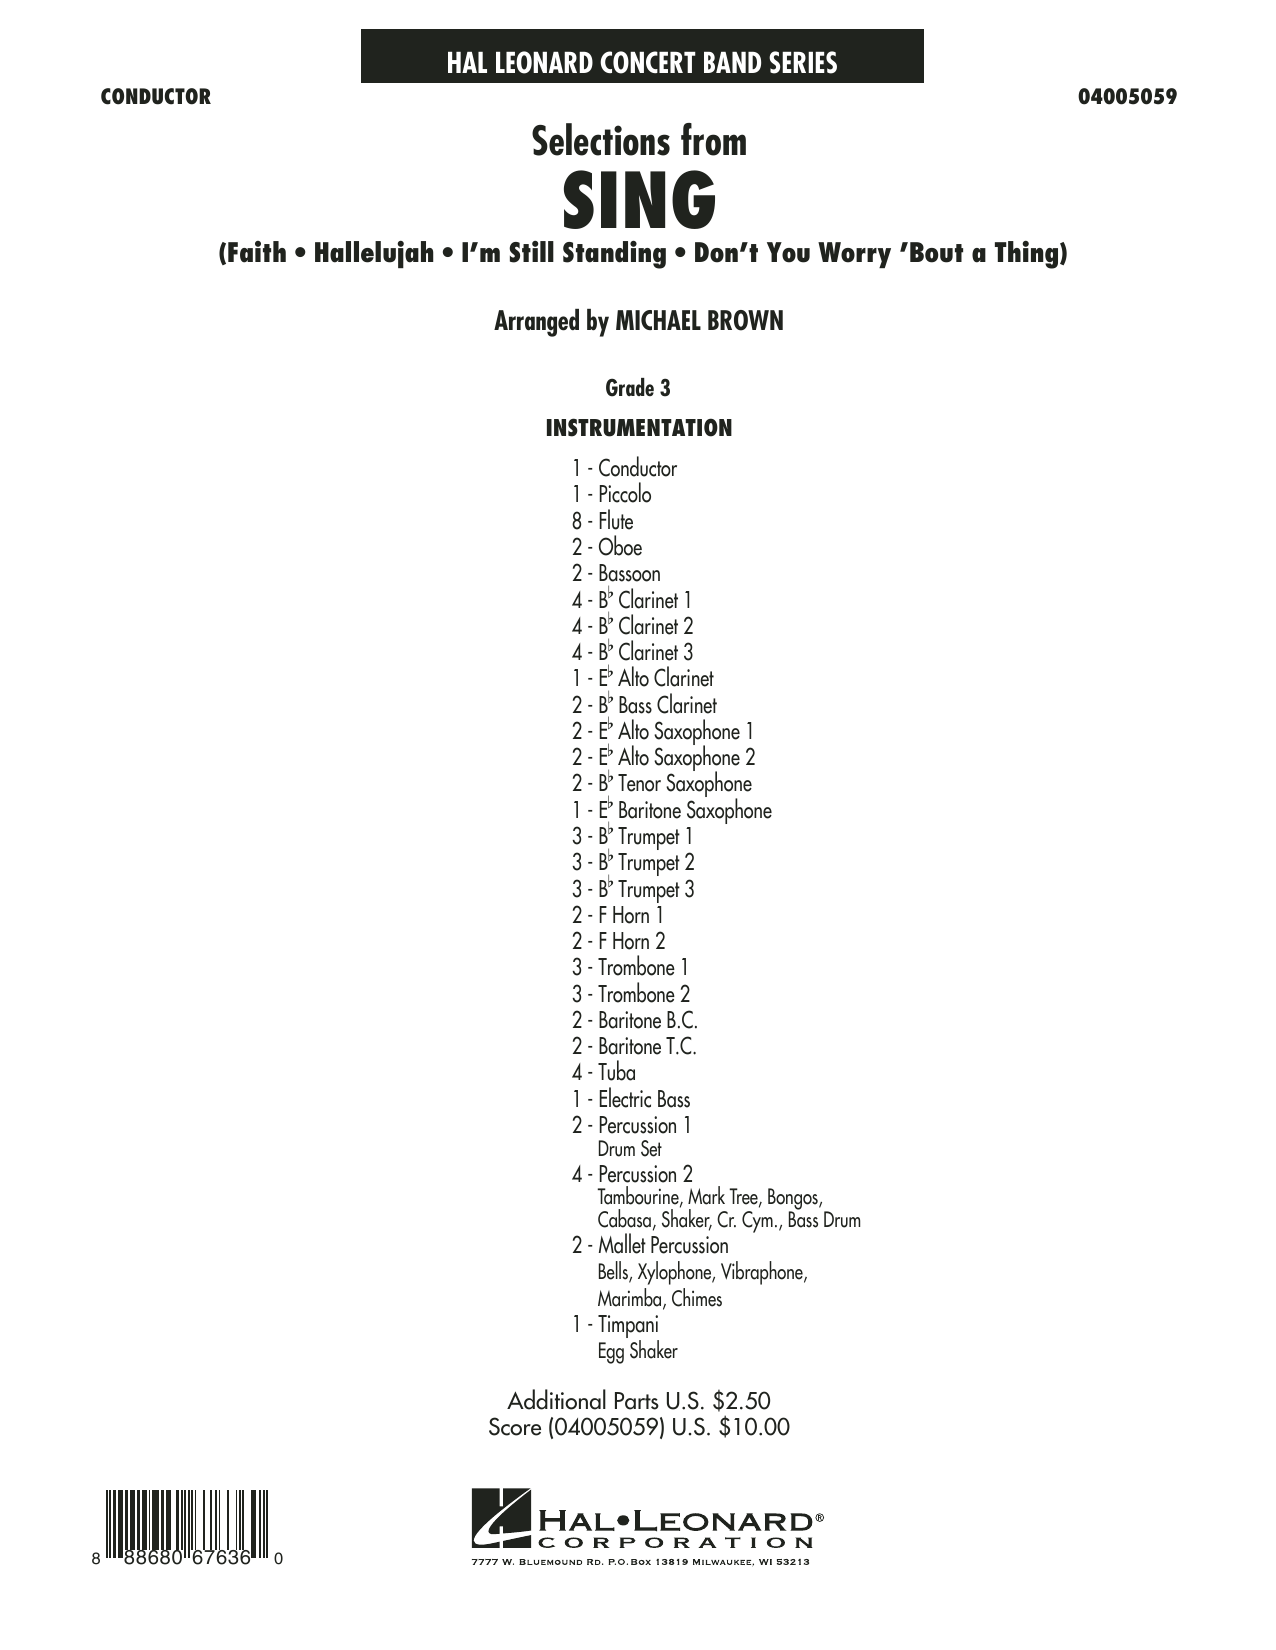 Selections from Sing - Conductor Score (Full Score) Sheet Music